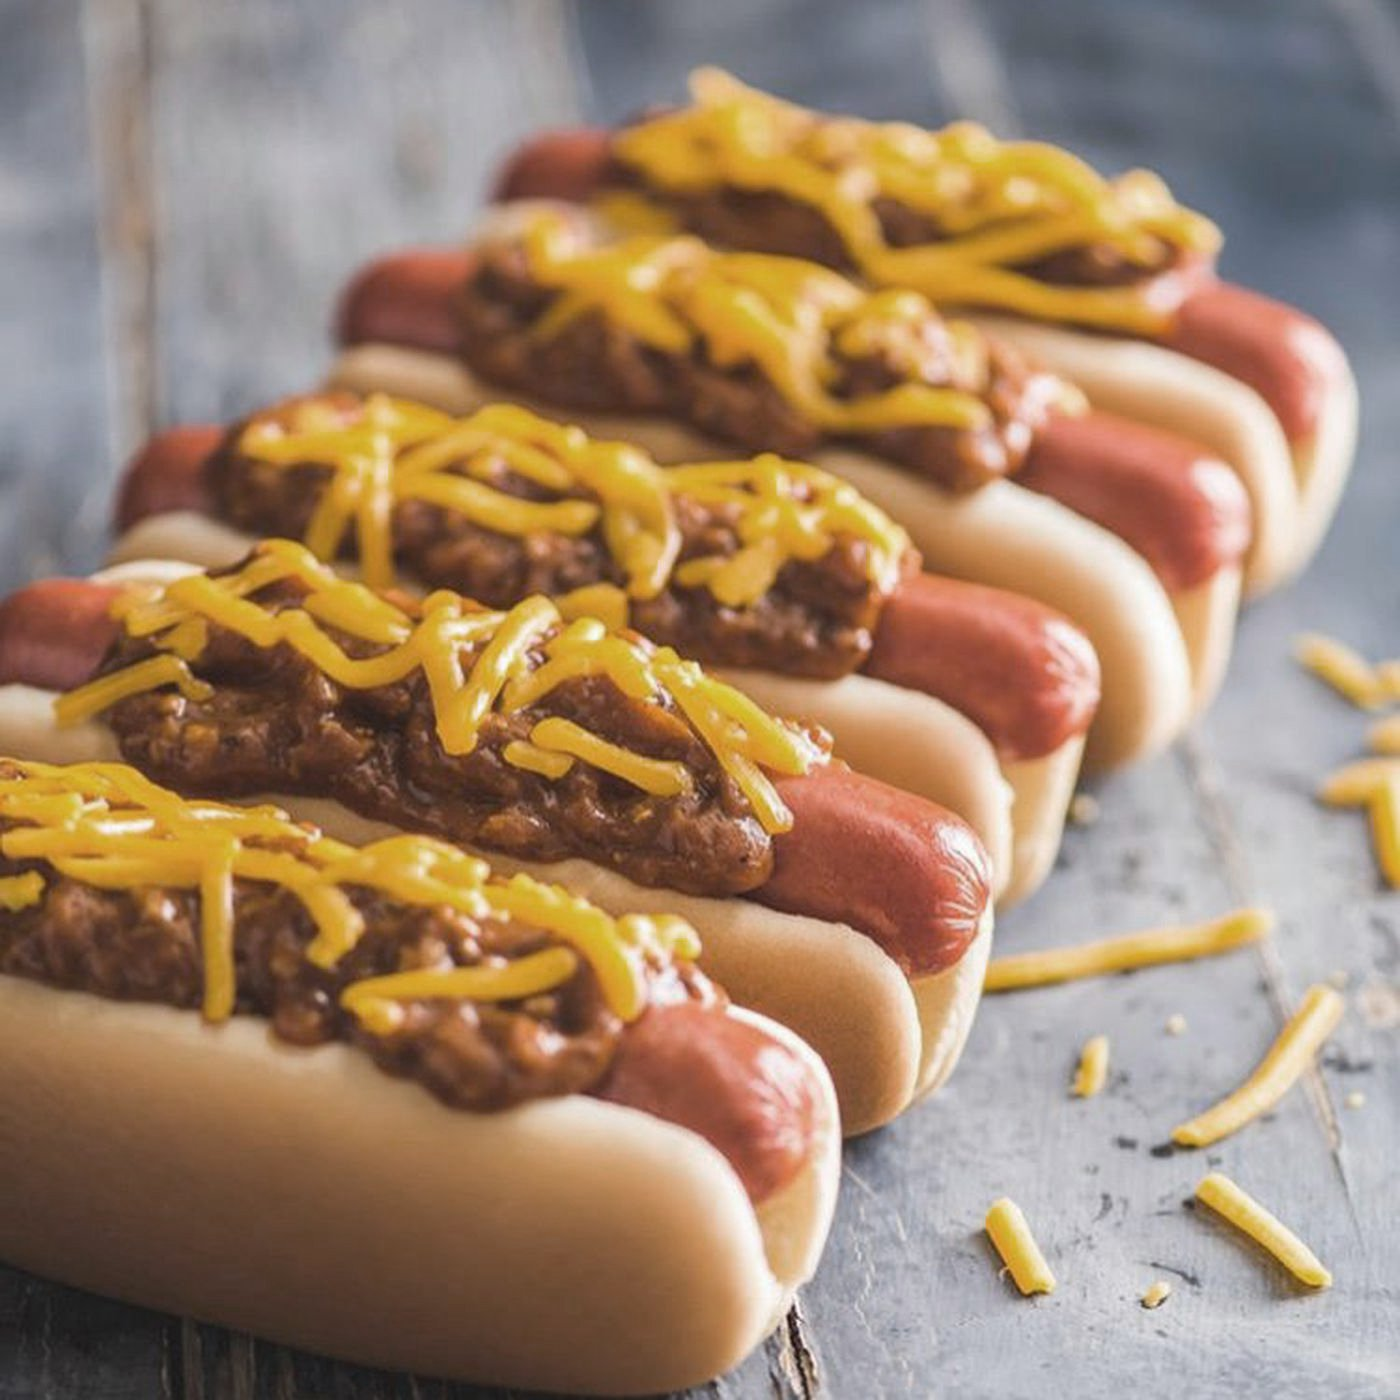 Wienerschnitzel hot dogs